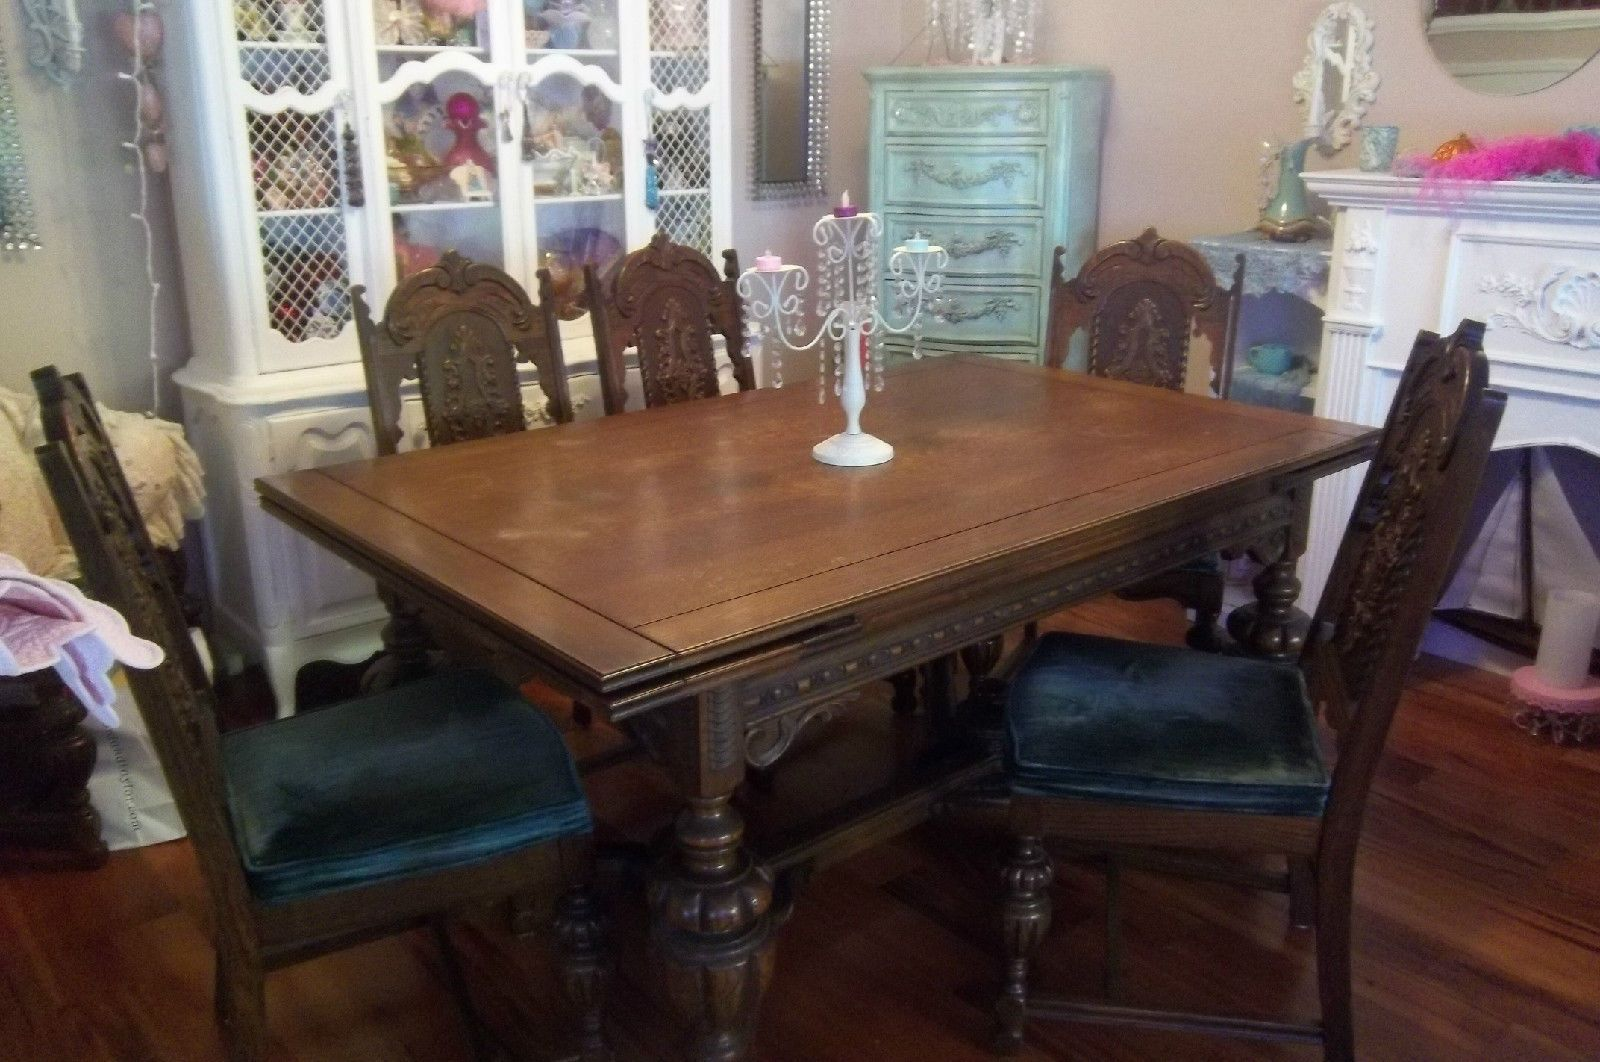 Gothic Dining Room Table Set with 6 Chairs and Server Buffet   eBayGothic dining room table set with 6 chairs and server   buffet  . Shabby Chic Dining Room Table Ebay. Home Design Ideas